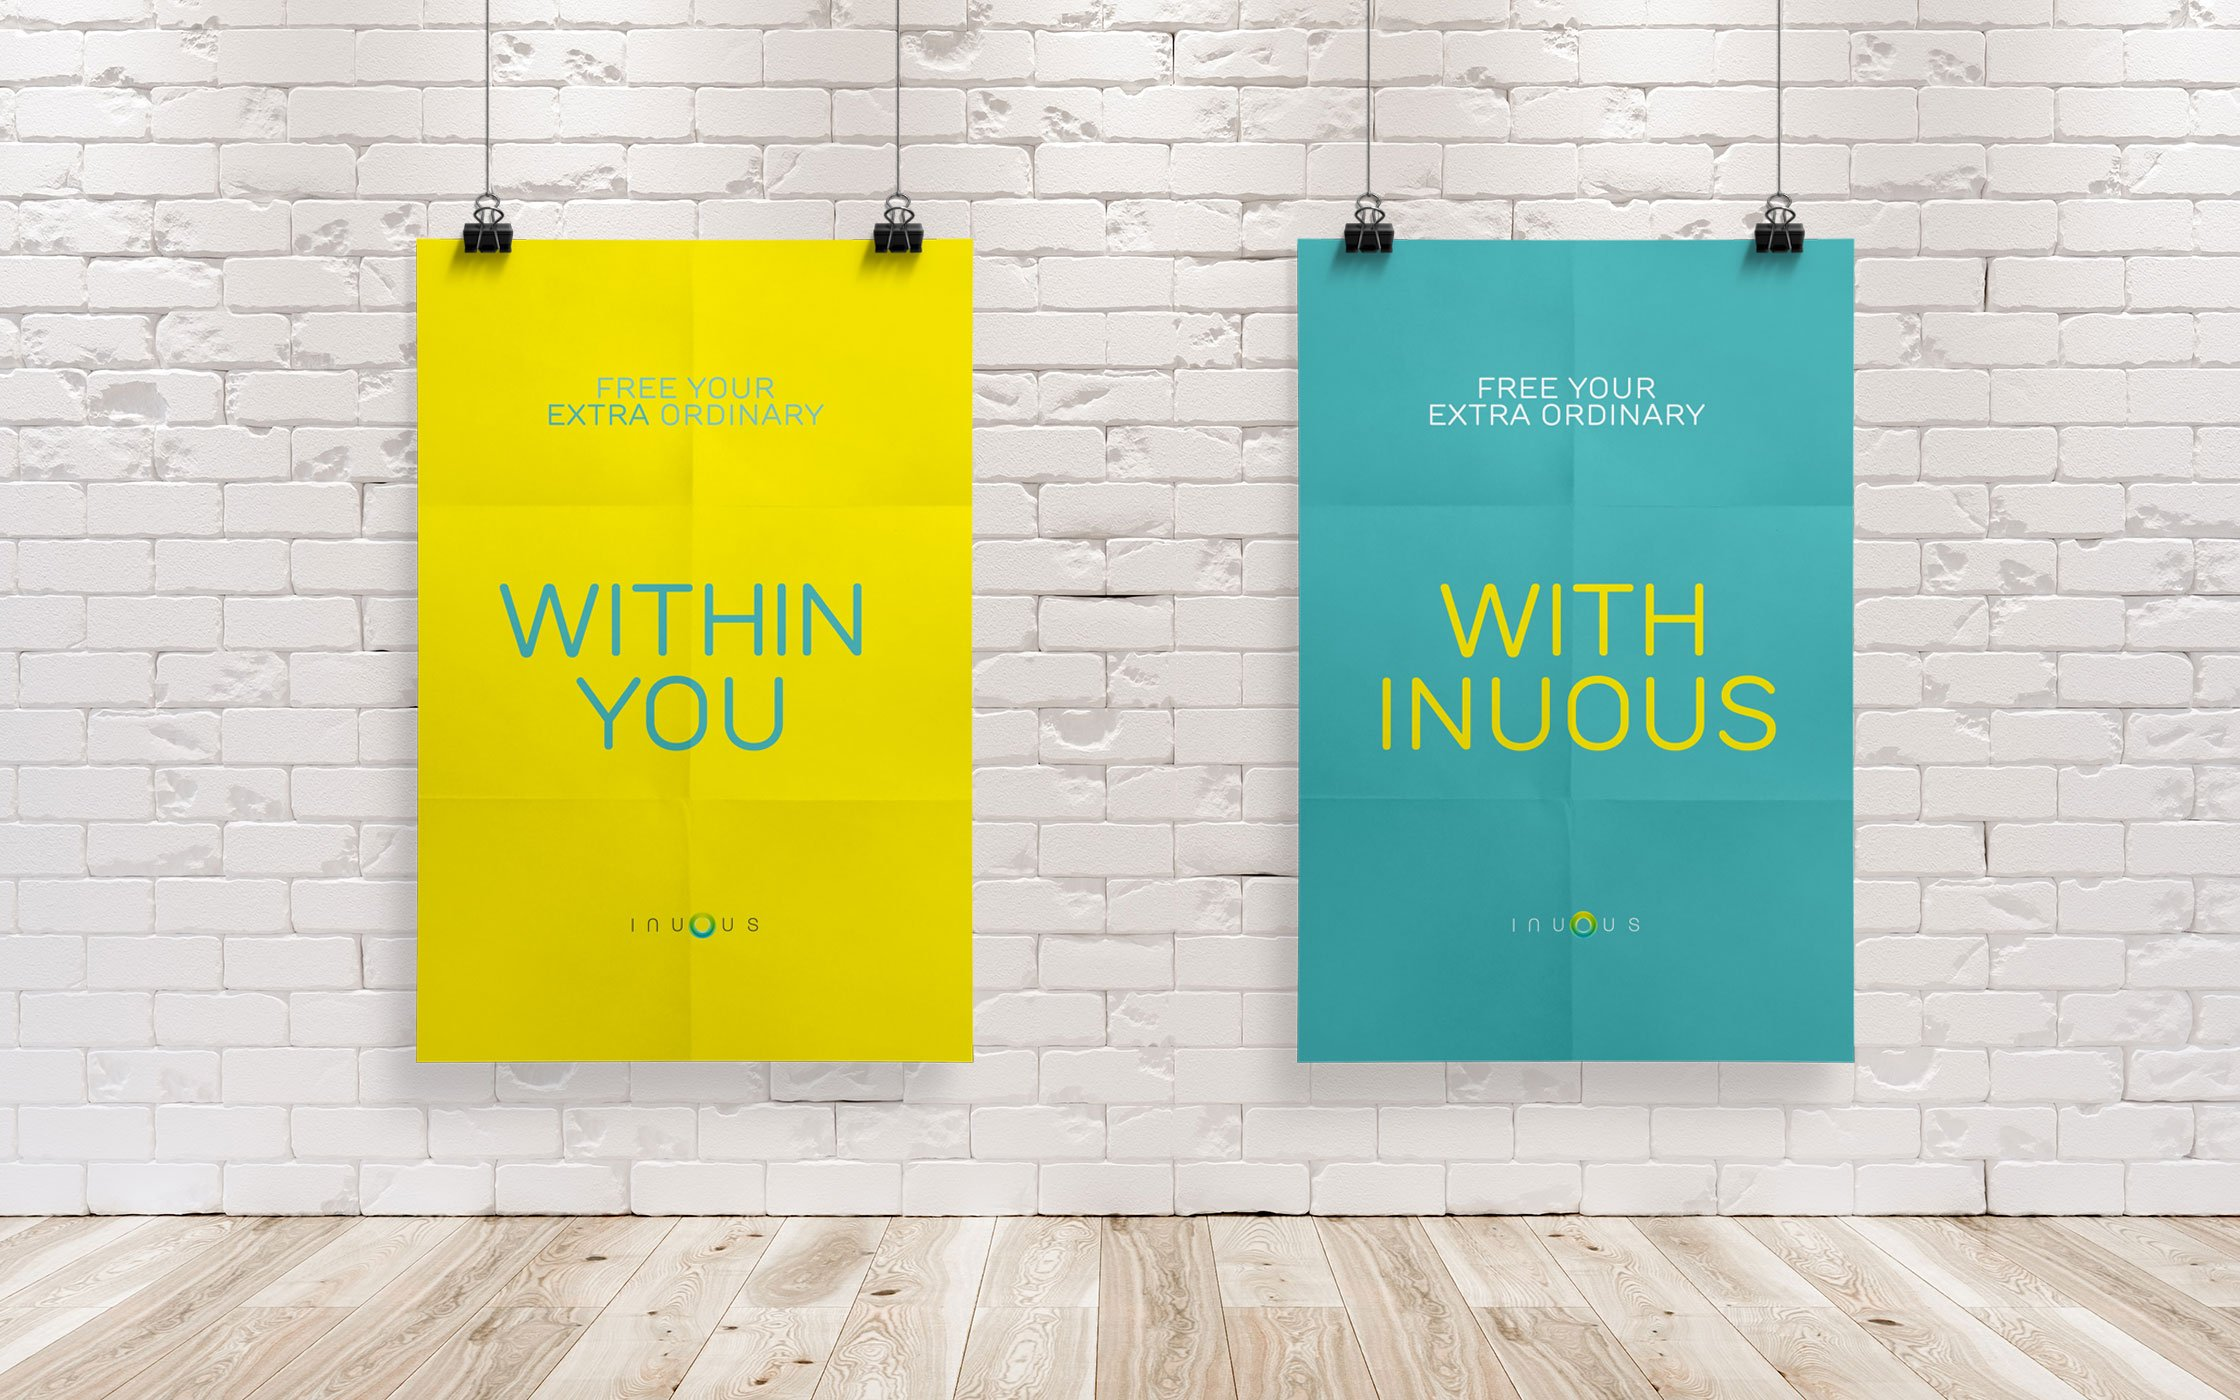 Marketing materials - Inuous